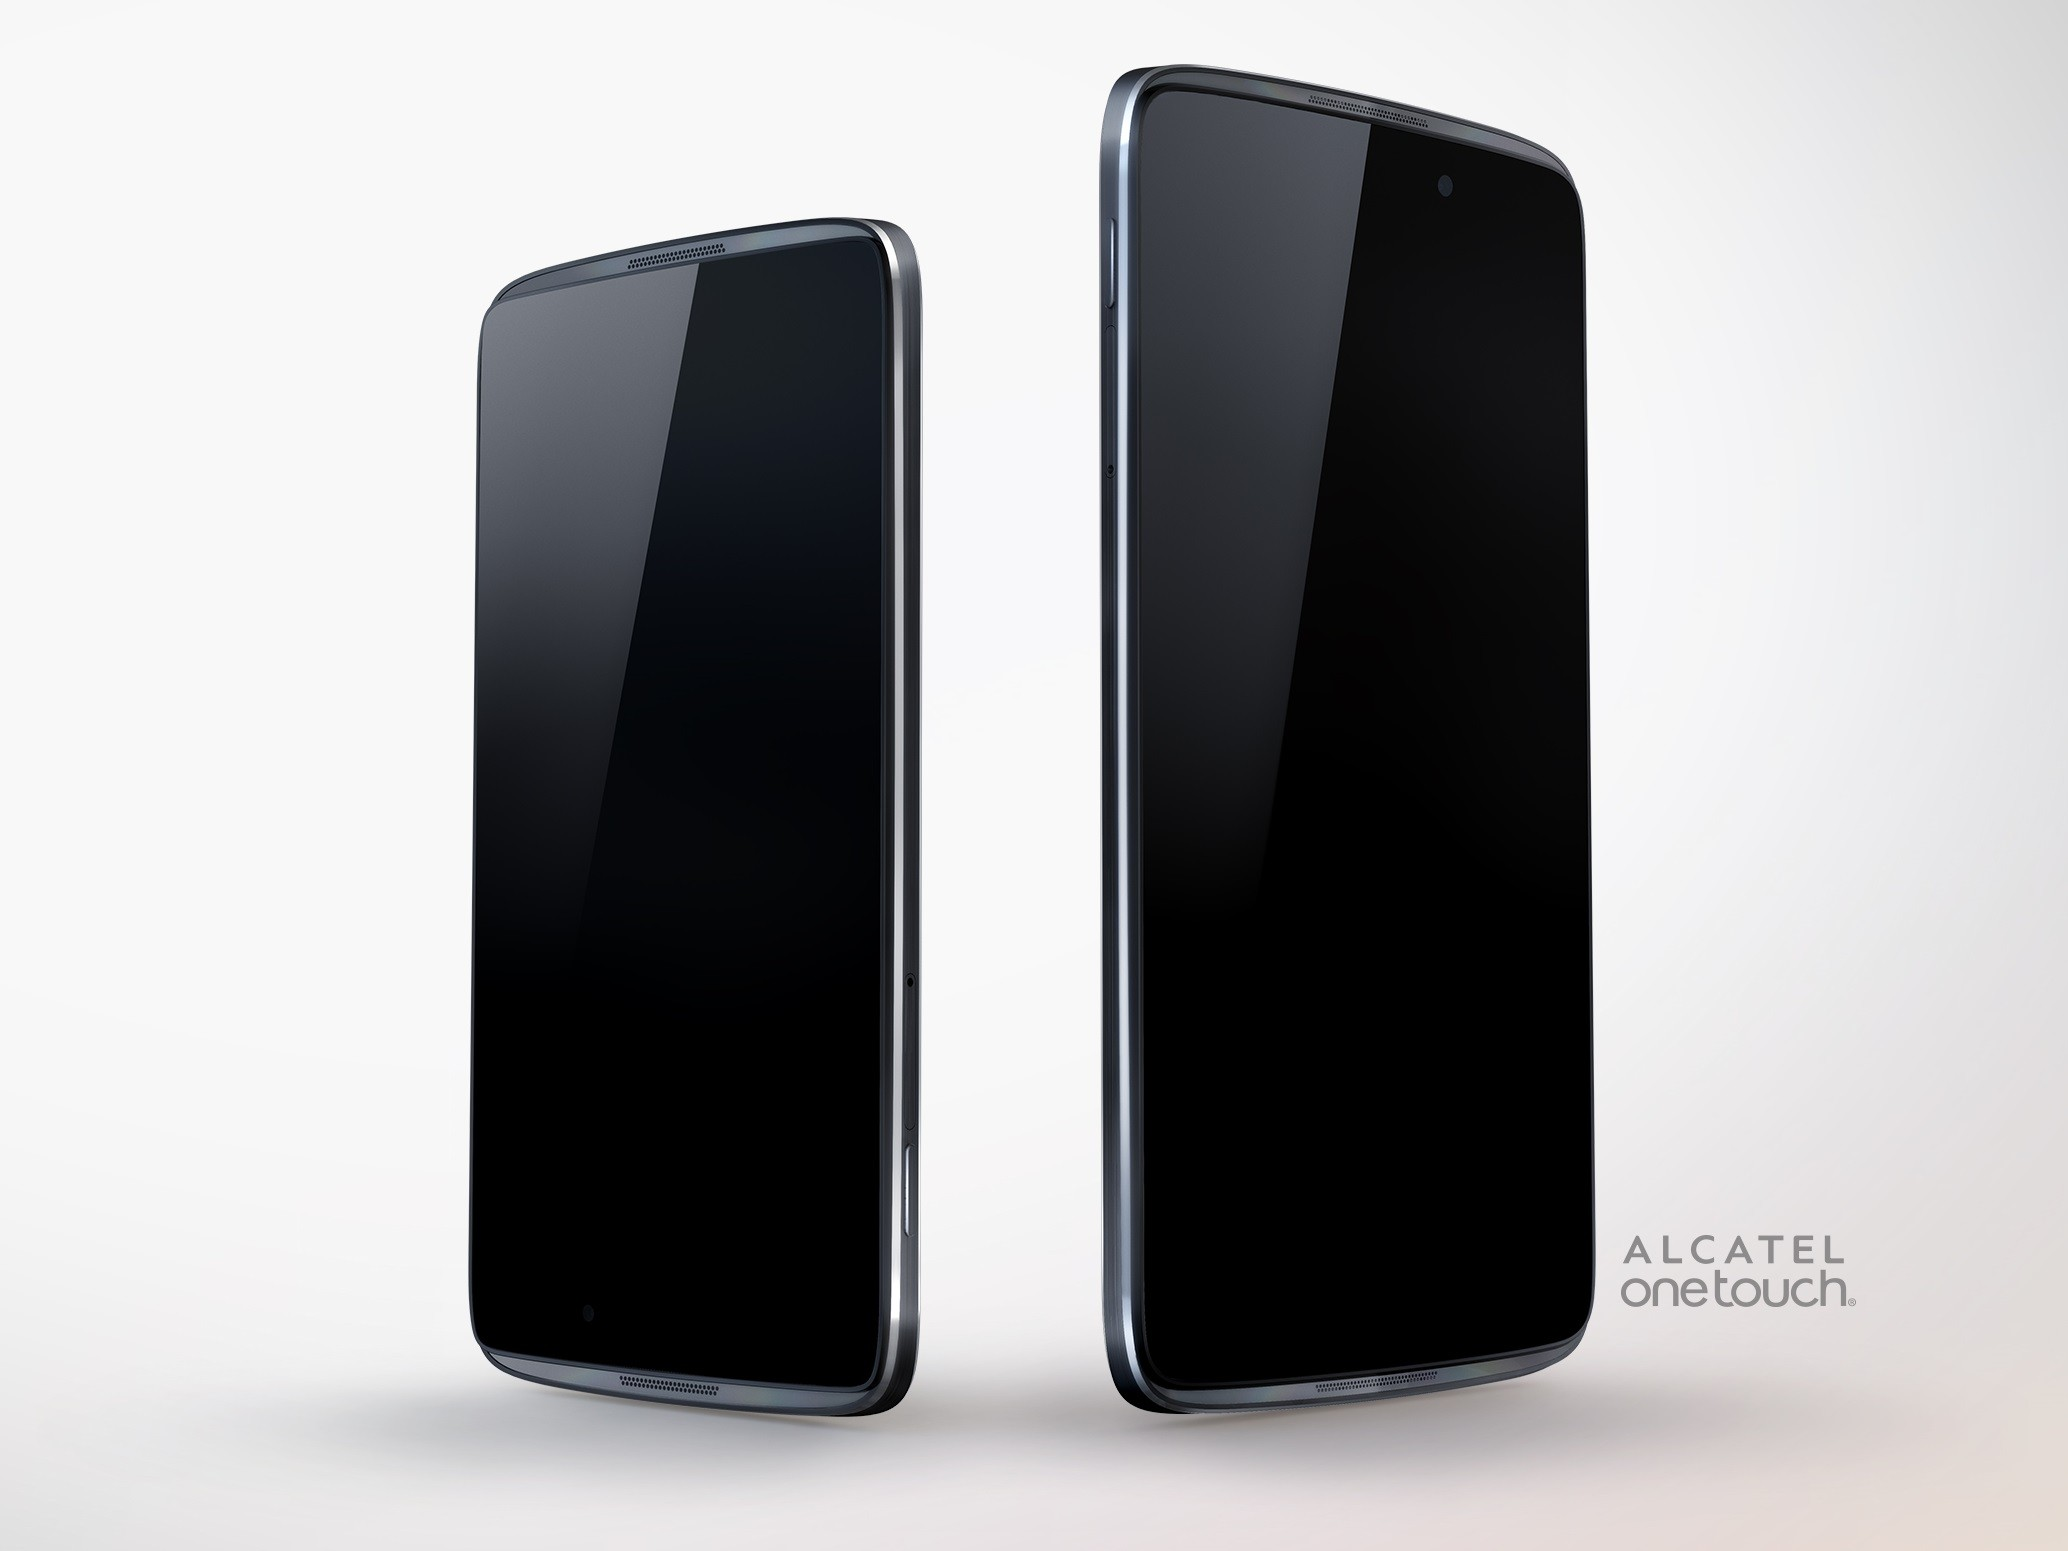 Alcatel Intros First Reversible Smartphones, Copying the